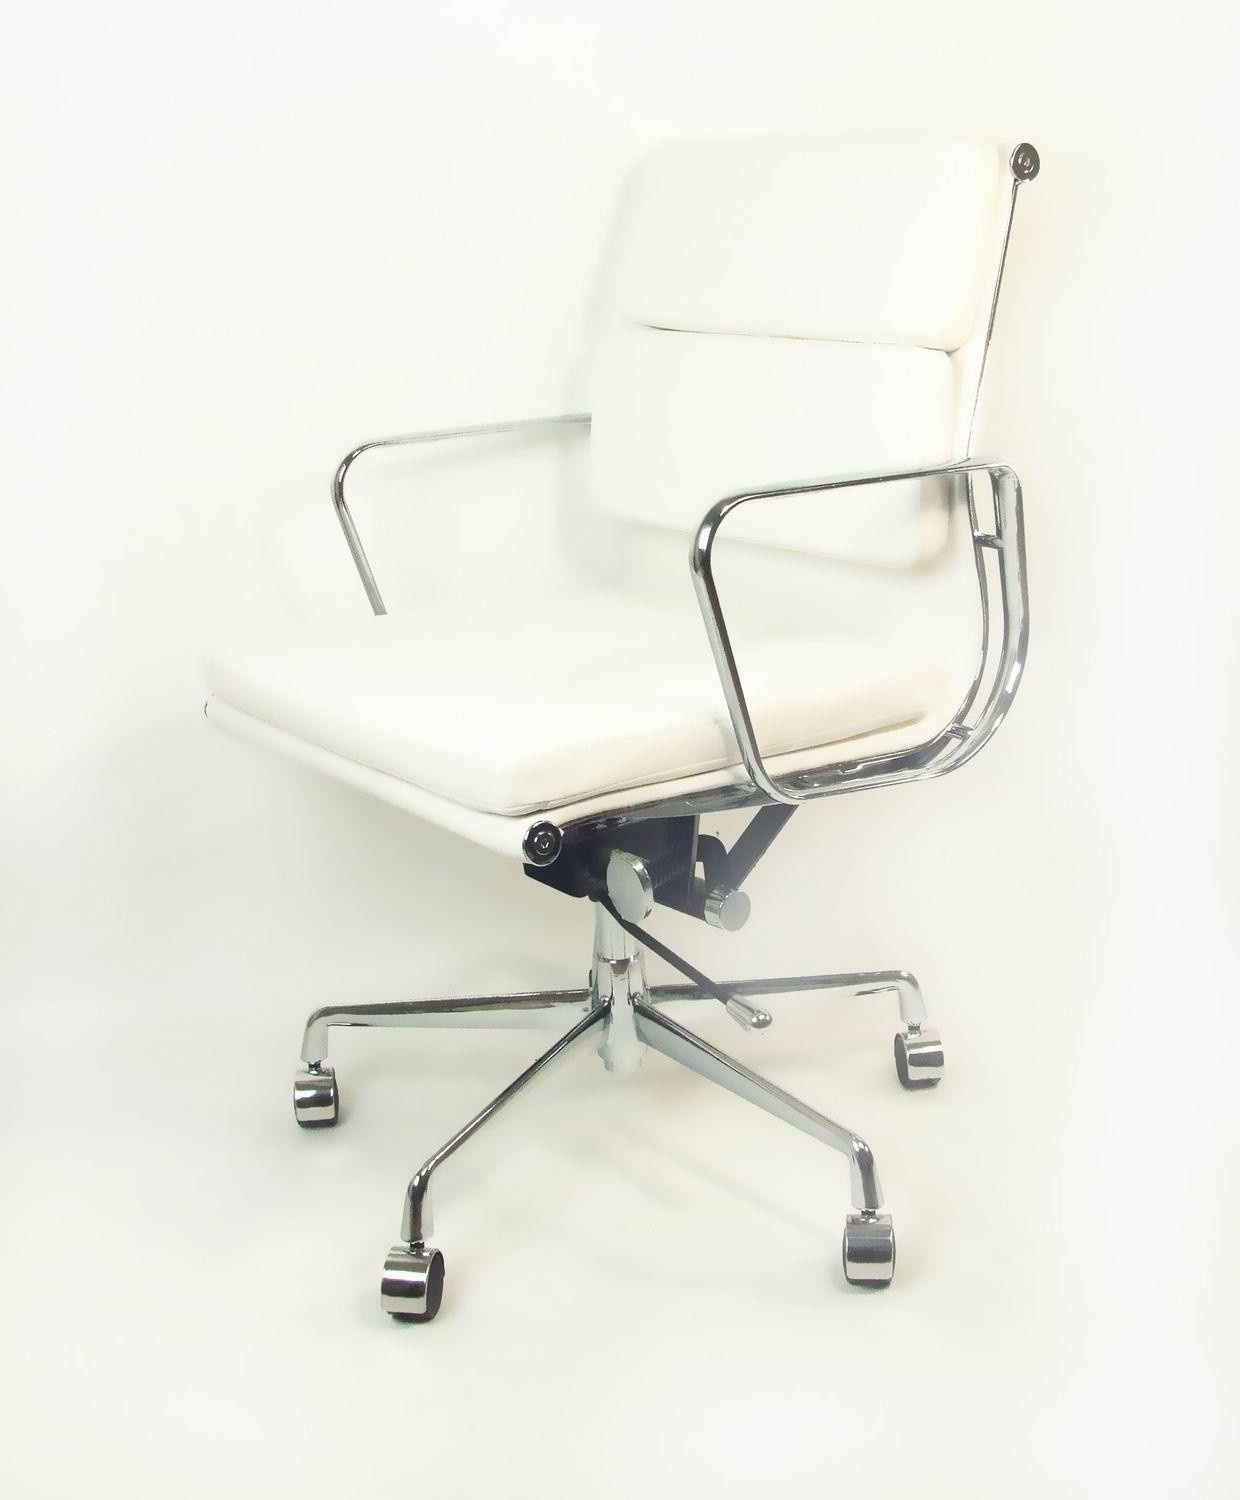 Interior Design Blogs Intended For Latest Ergonomic Ultra Modern White Executive Office Chairs (View 18 of 20)